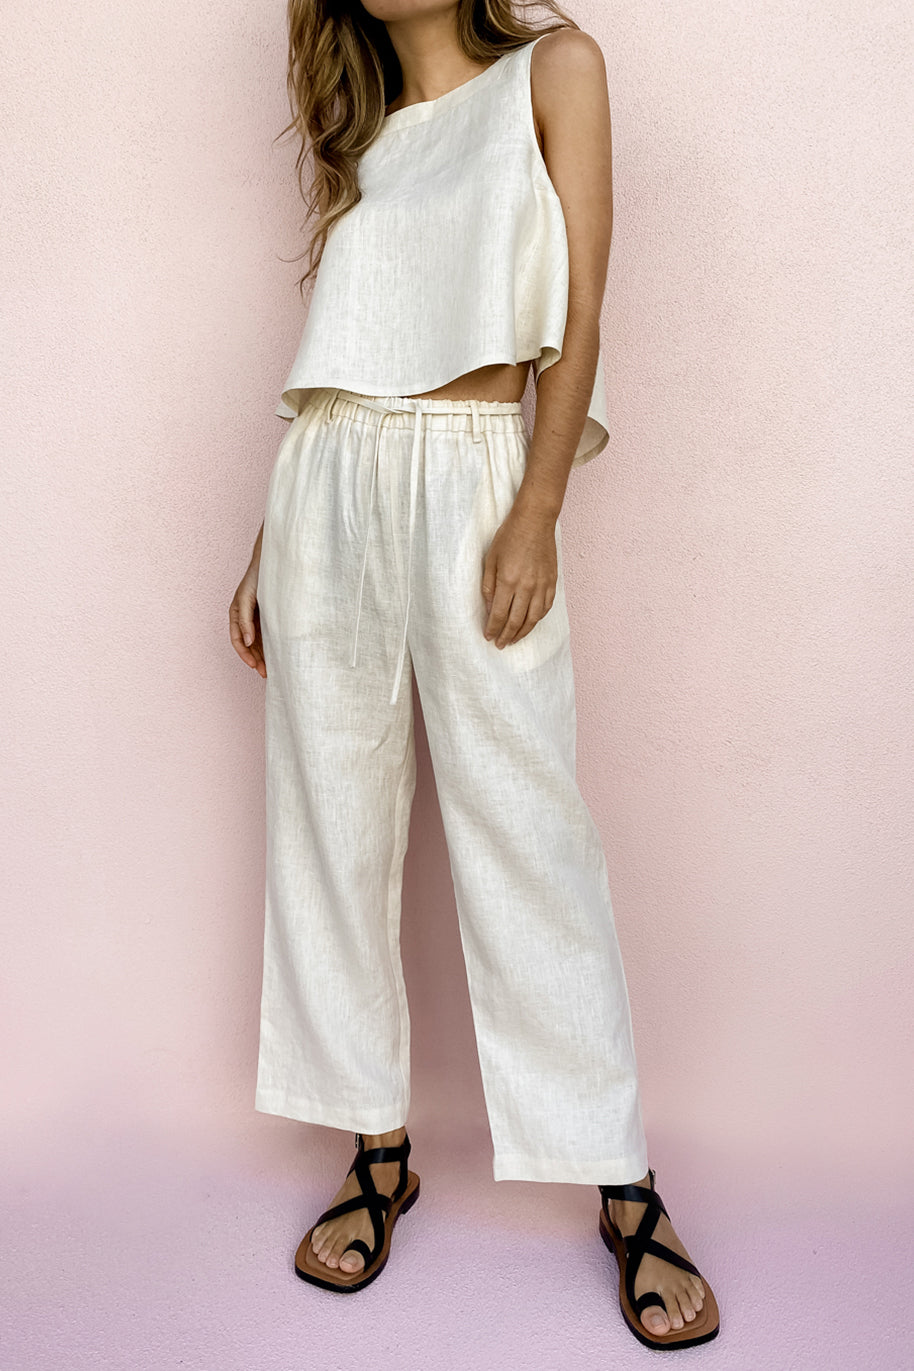 SIONA PANT - CLOUD CREAM